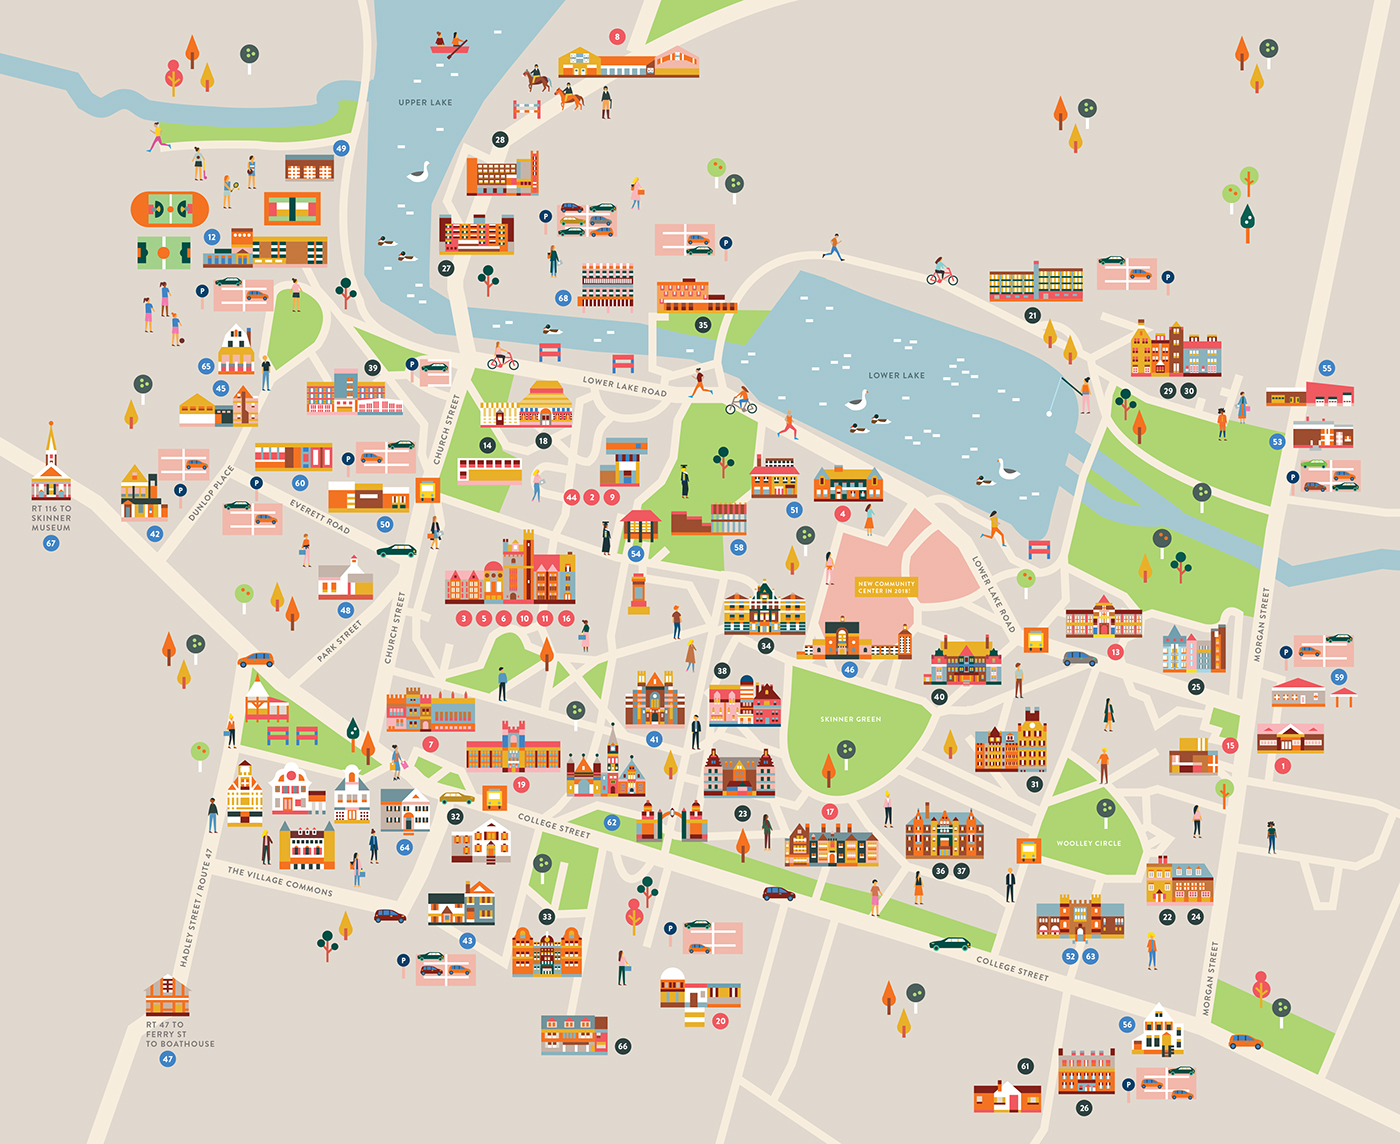 Mount Holyoke College Campus map on Behance